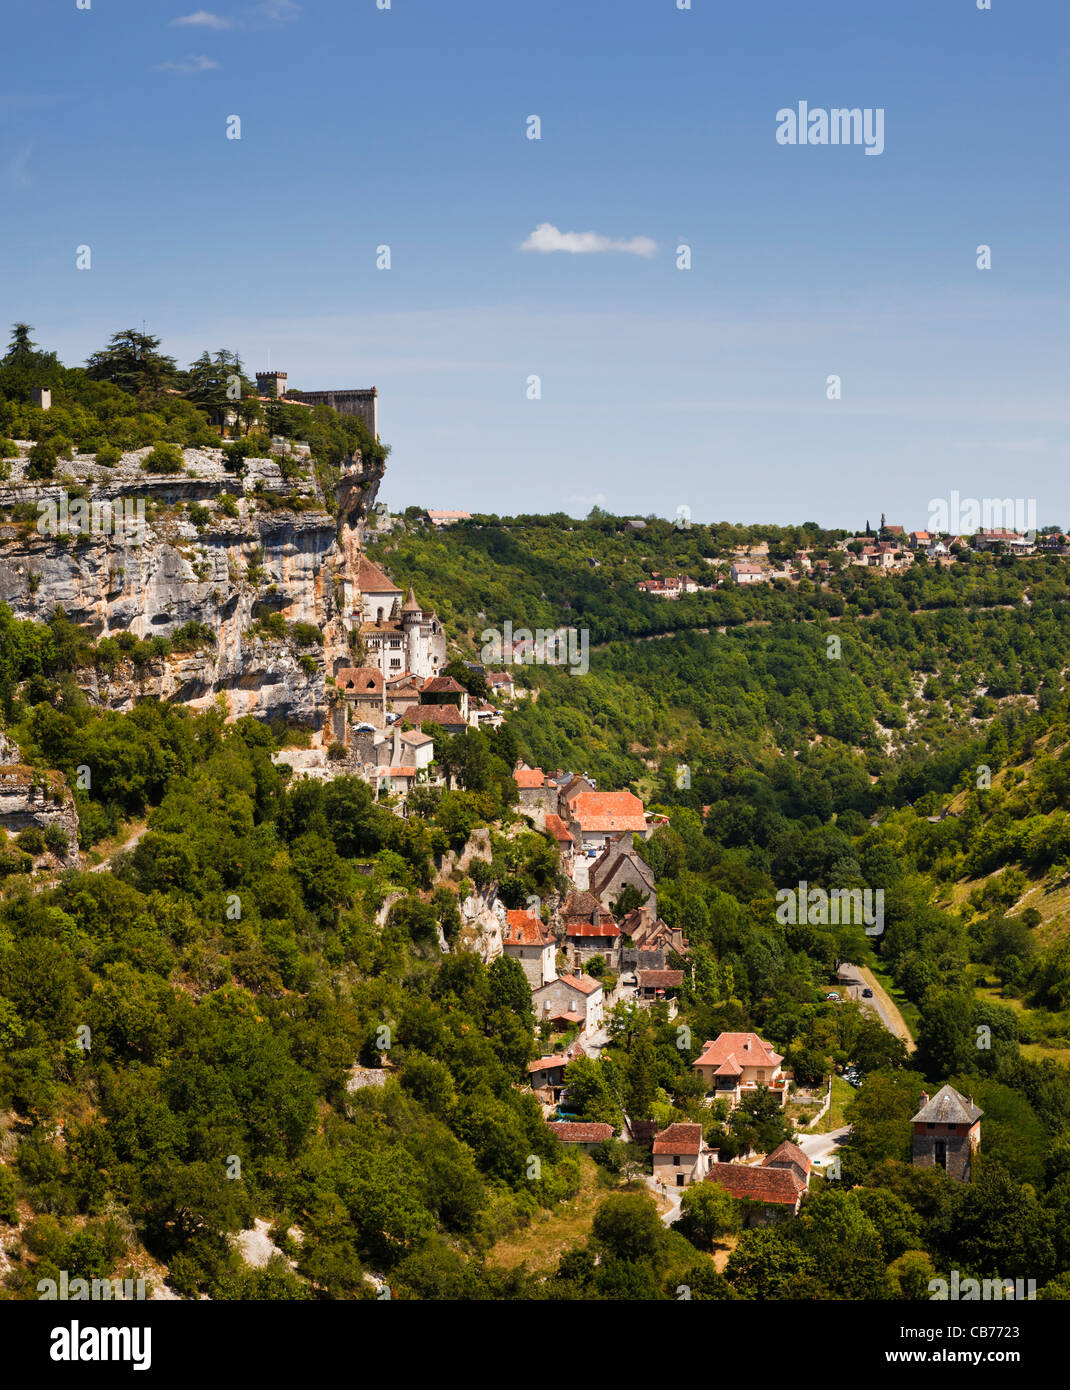 Cliff top town of Rocamadour in the Lot region of Southern France Stock Photo